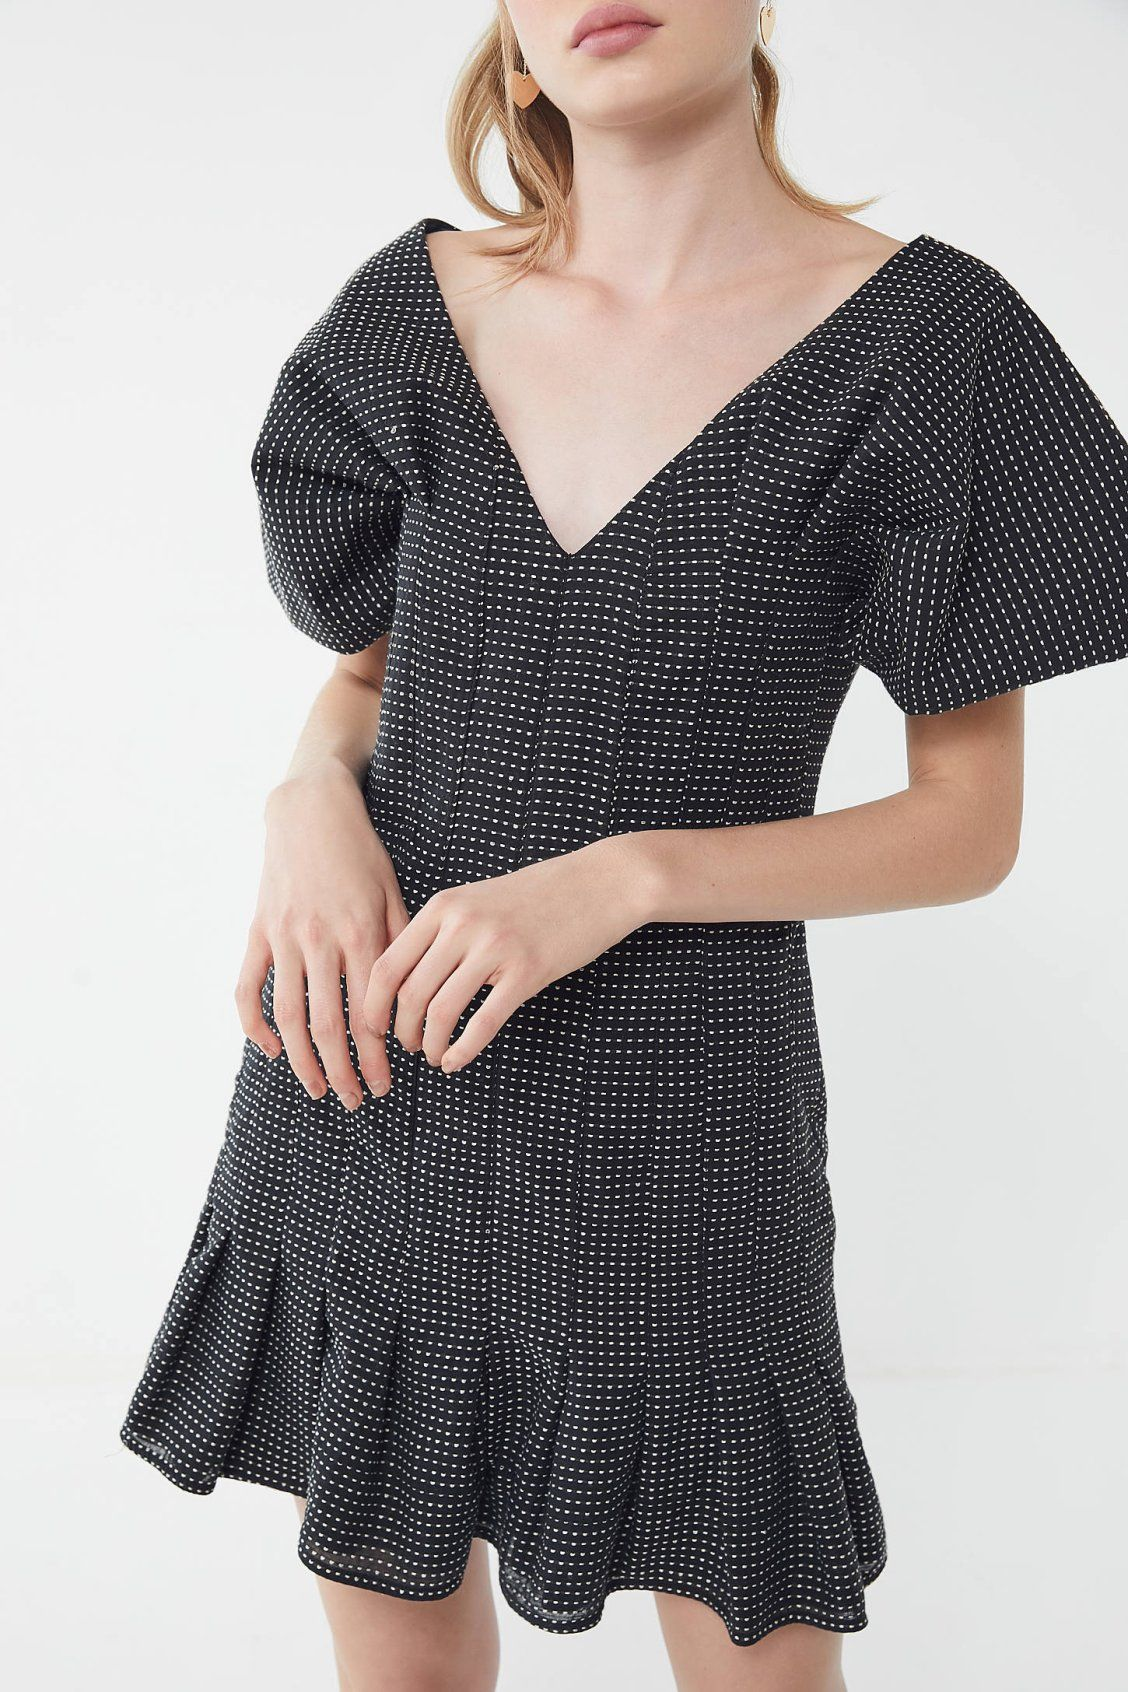 Keepsake mercy dotted puff sleeve dress urban outfitters